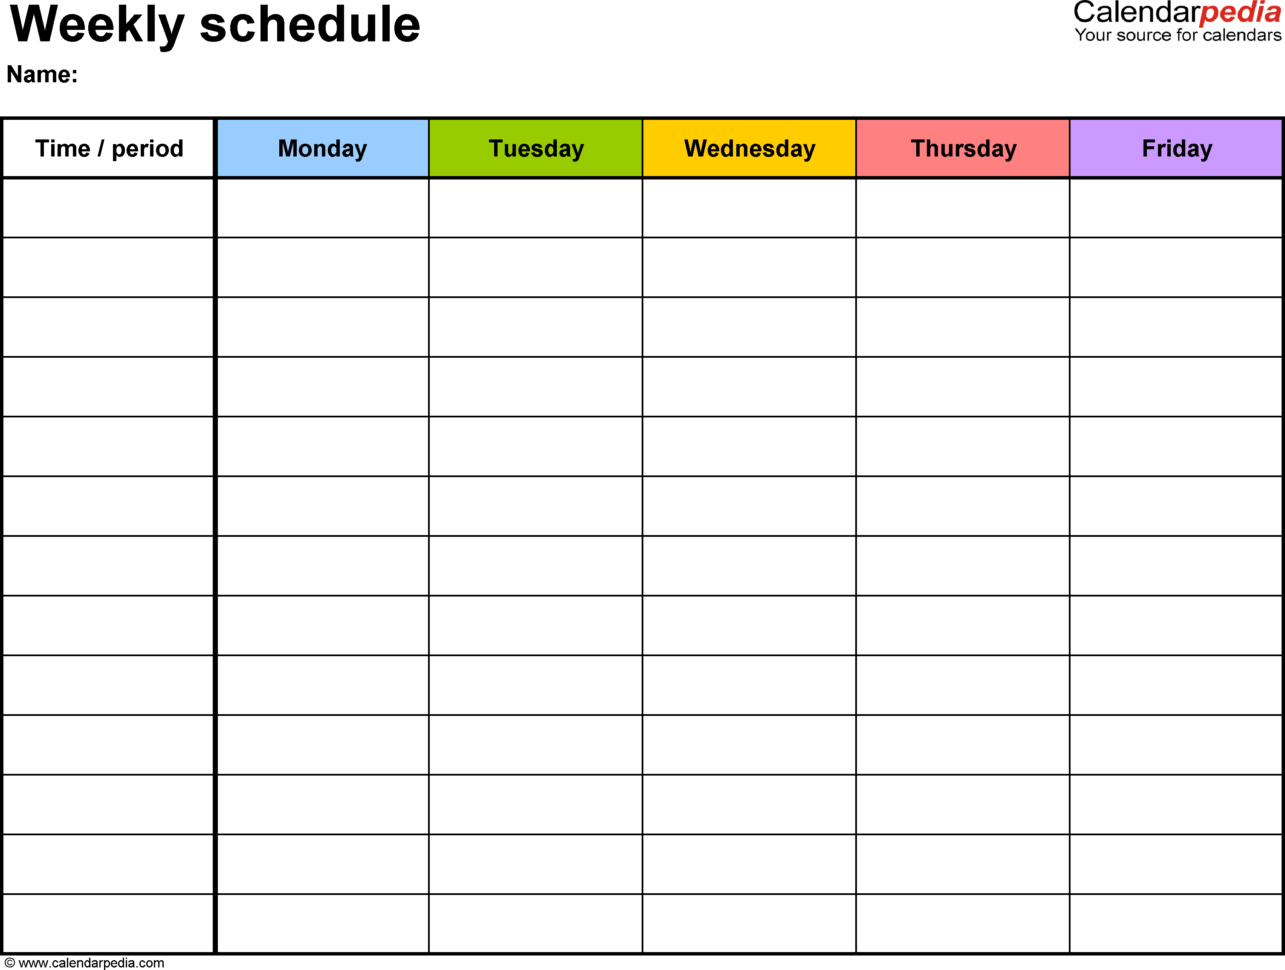 Easy To Use Spreadsheet Intended For Free Weekly Schedule Templates For Excel  18 Templates